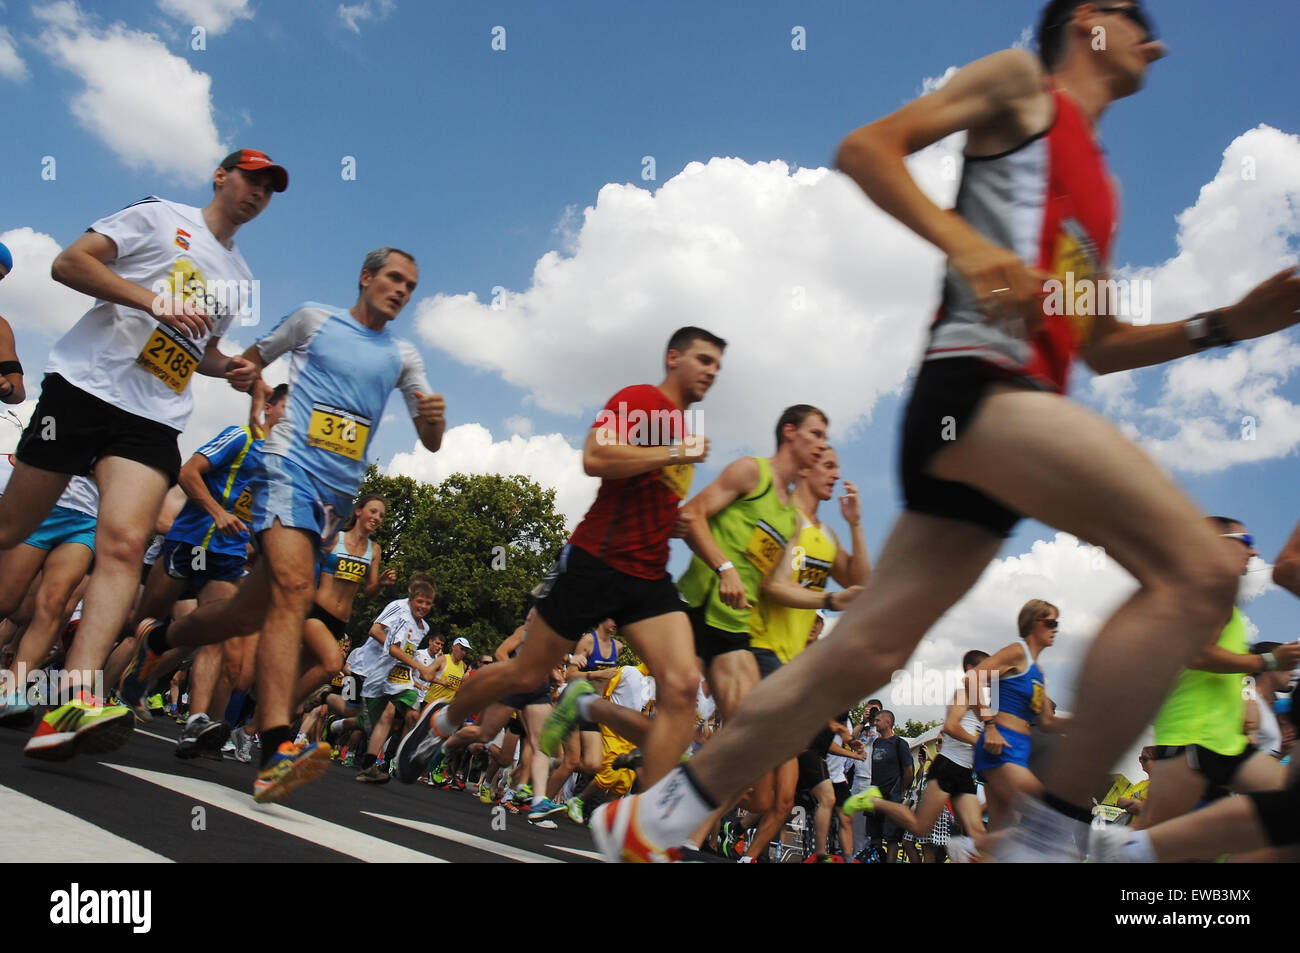 MOSCOW - JULY 13: Unidentified sportsmen on city event Sport of Moscow passing in Luzhniki on July 13, 2013, in - Stock Image